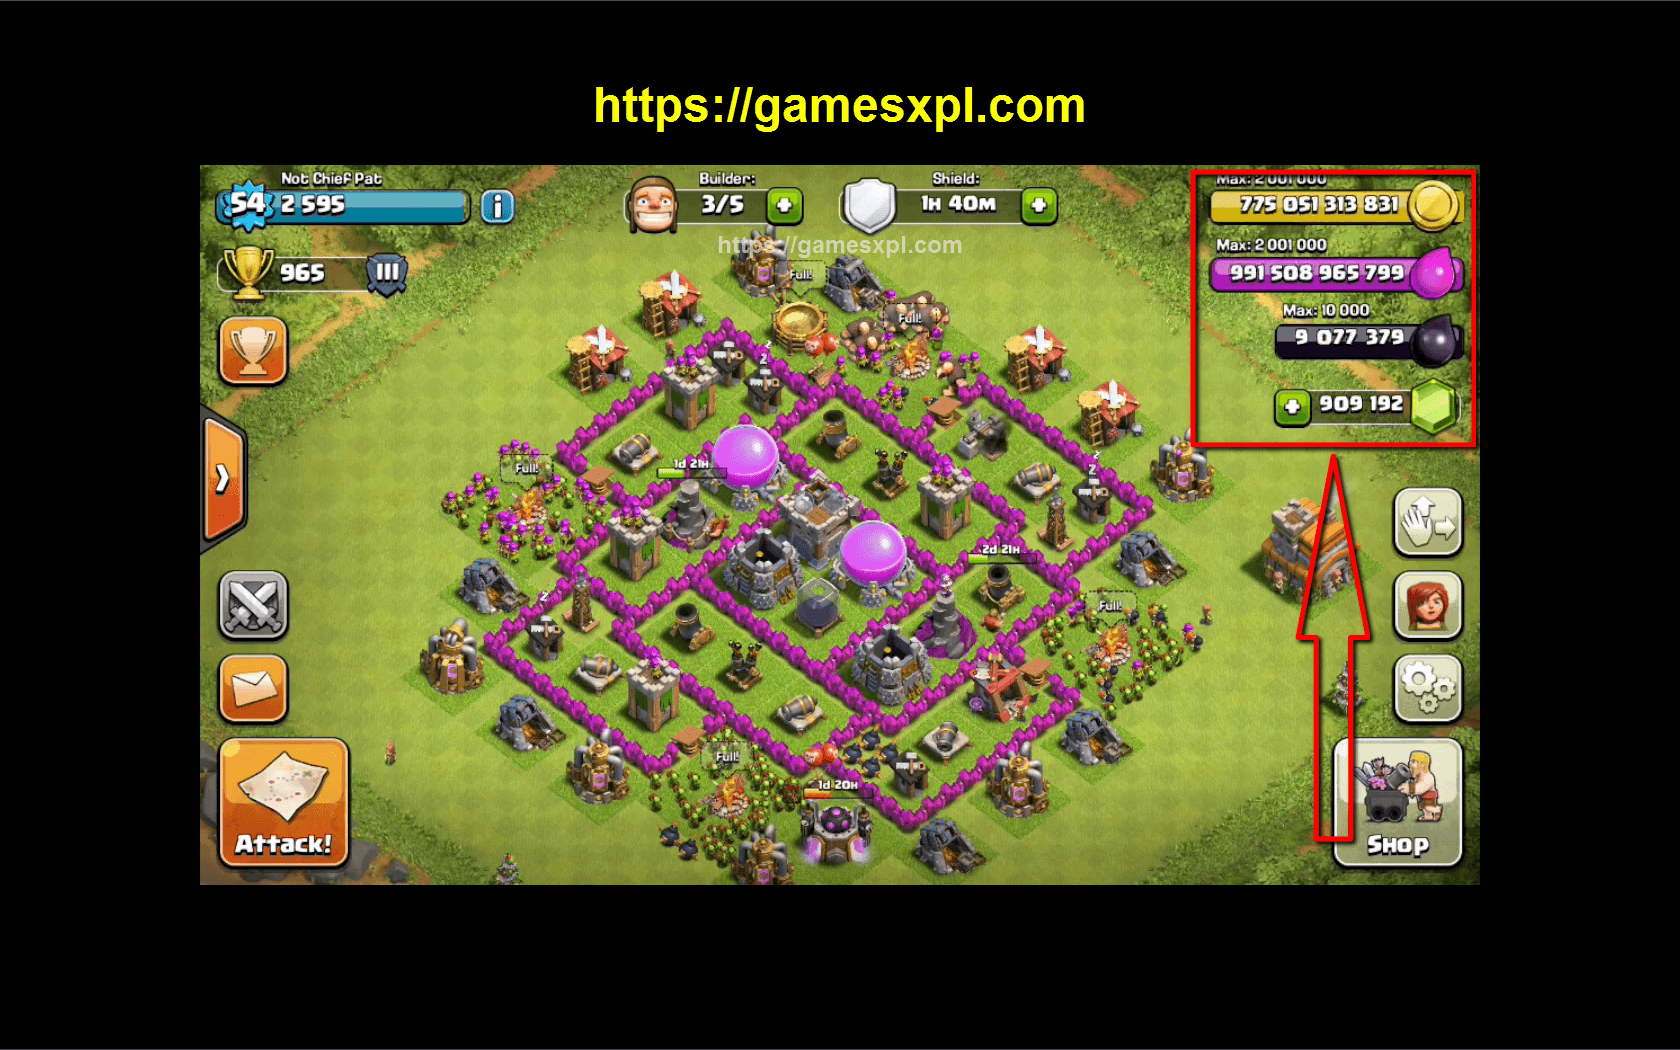 Clash of Clans Hack Mod Apk – How to Get Unlimited Gems, Gold, Elixir and Dark Elixir